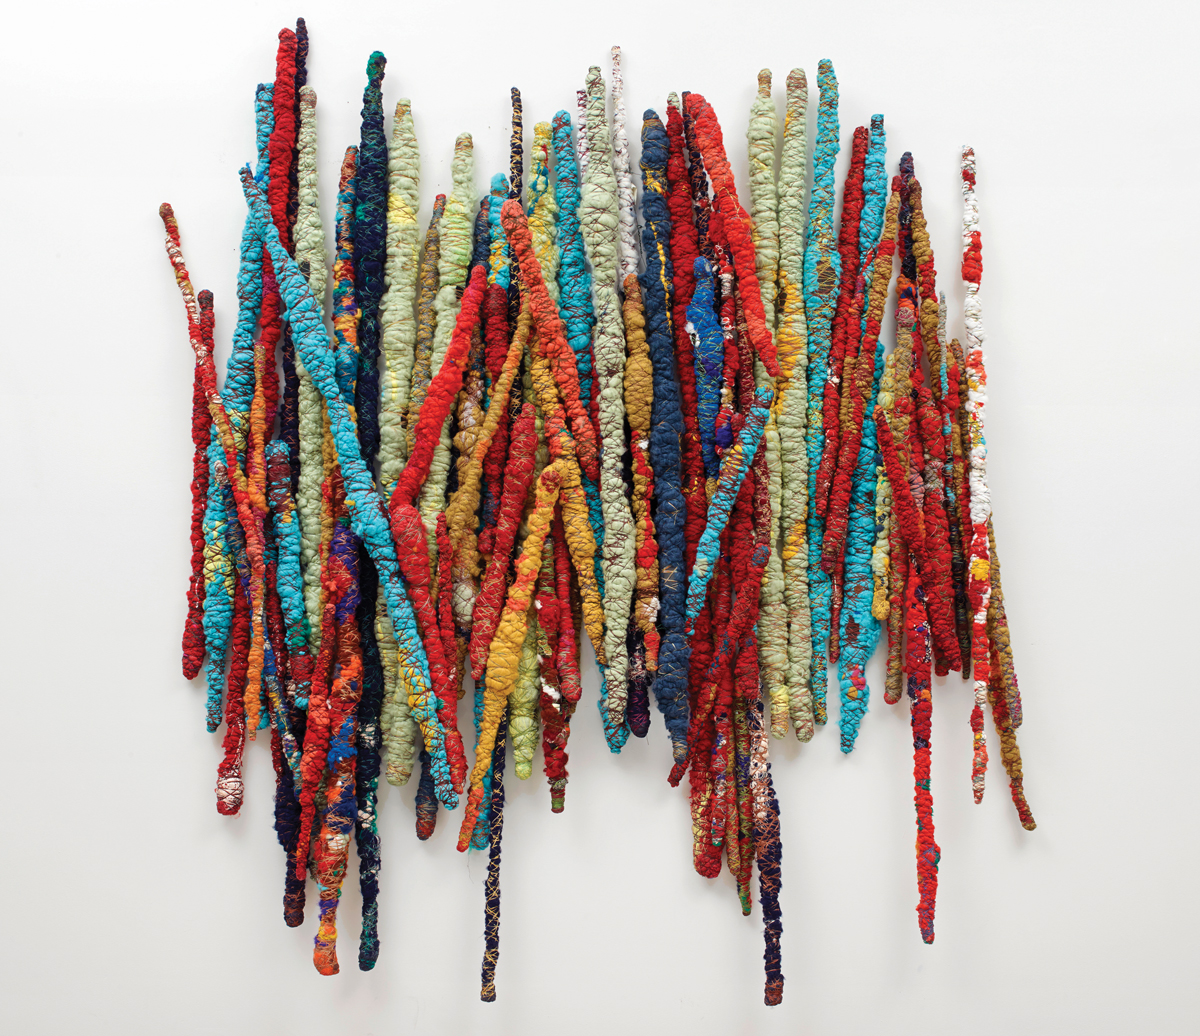 Sheila Hicks, Safe Passage, 2014-15. A fabric artwork with various multicolored sticks arranged together.